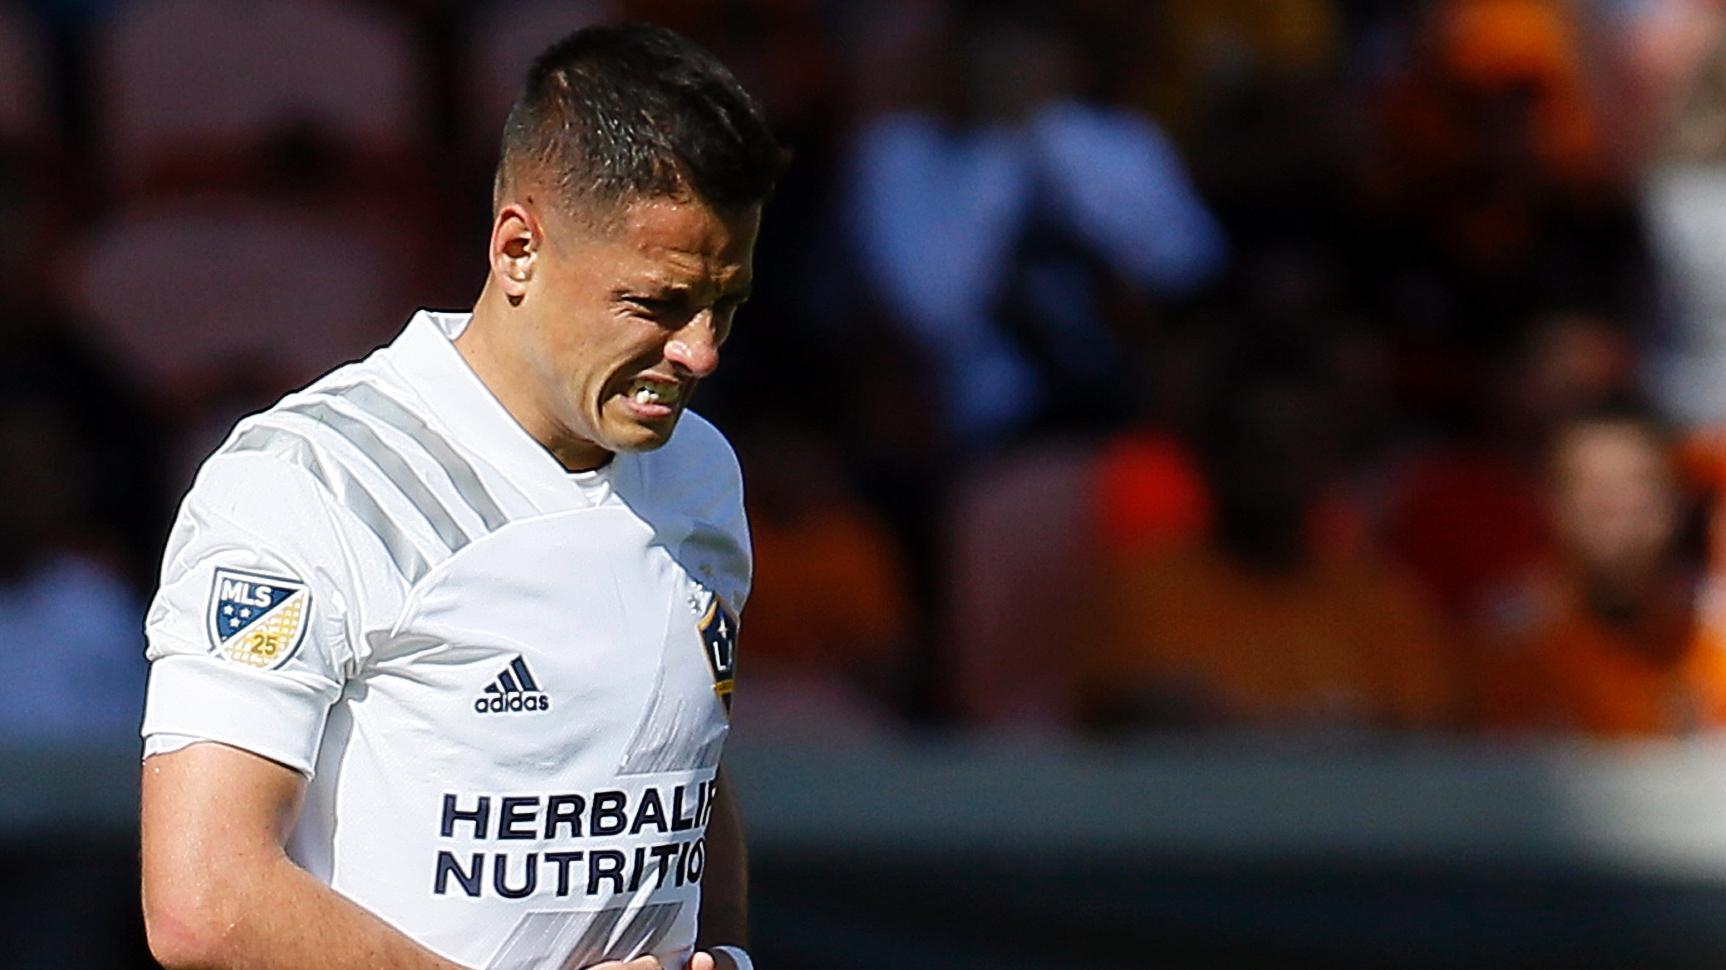 Chicharito 'starving for service' in Galaxy opener